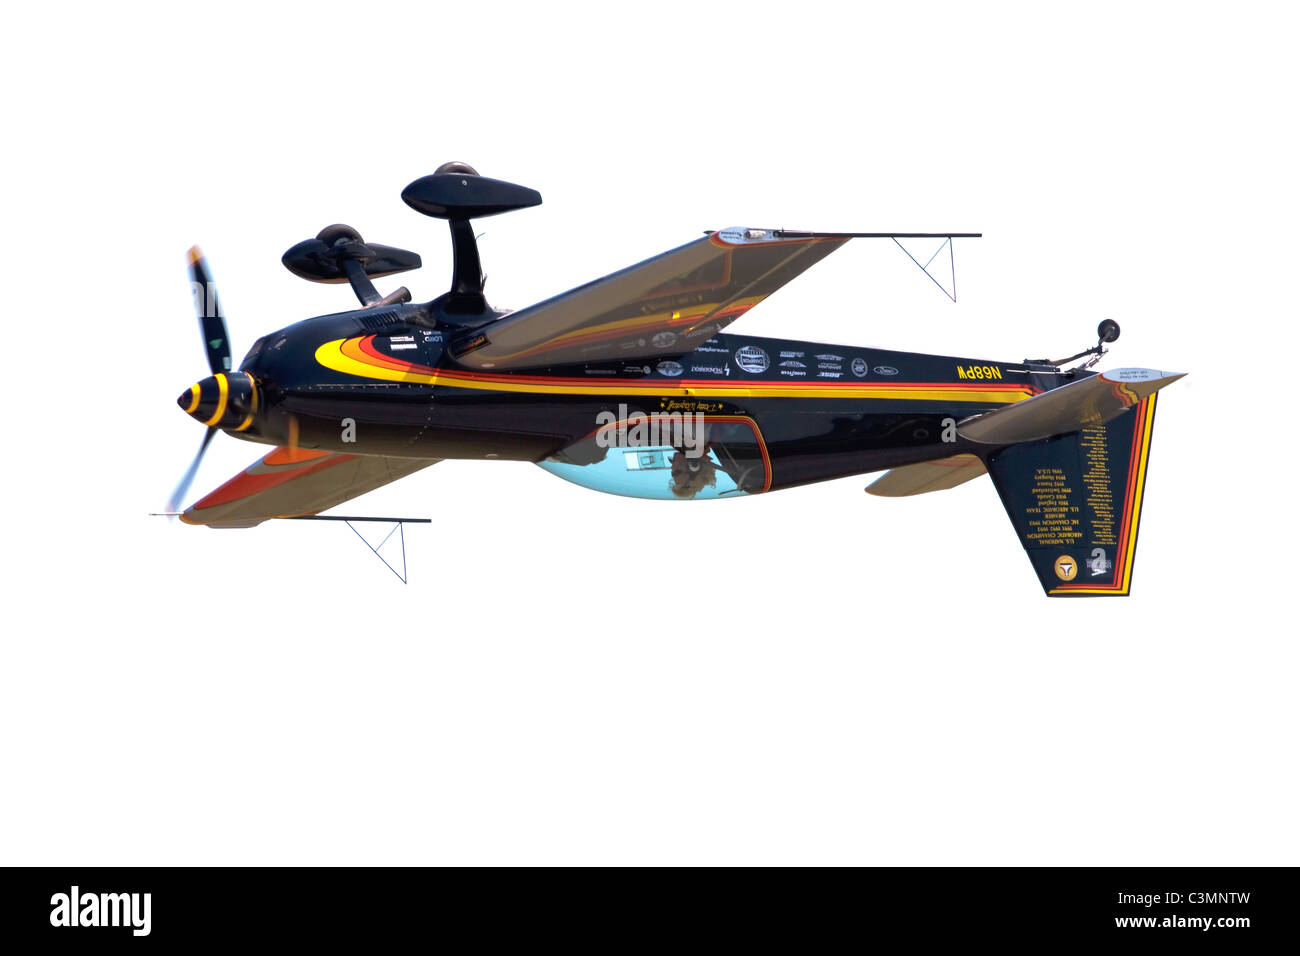 Patty Wagstaffe flying inverted in her Extra aerobatic aircraft - Stock Image